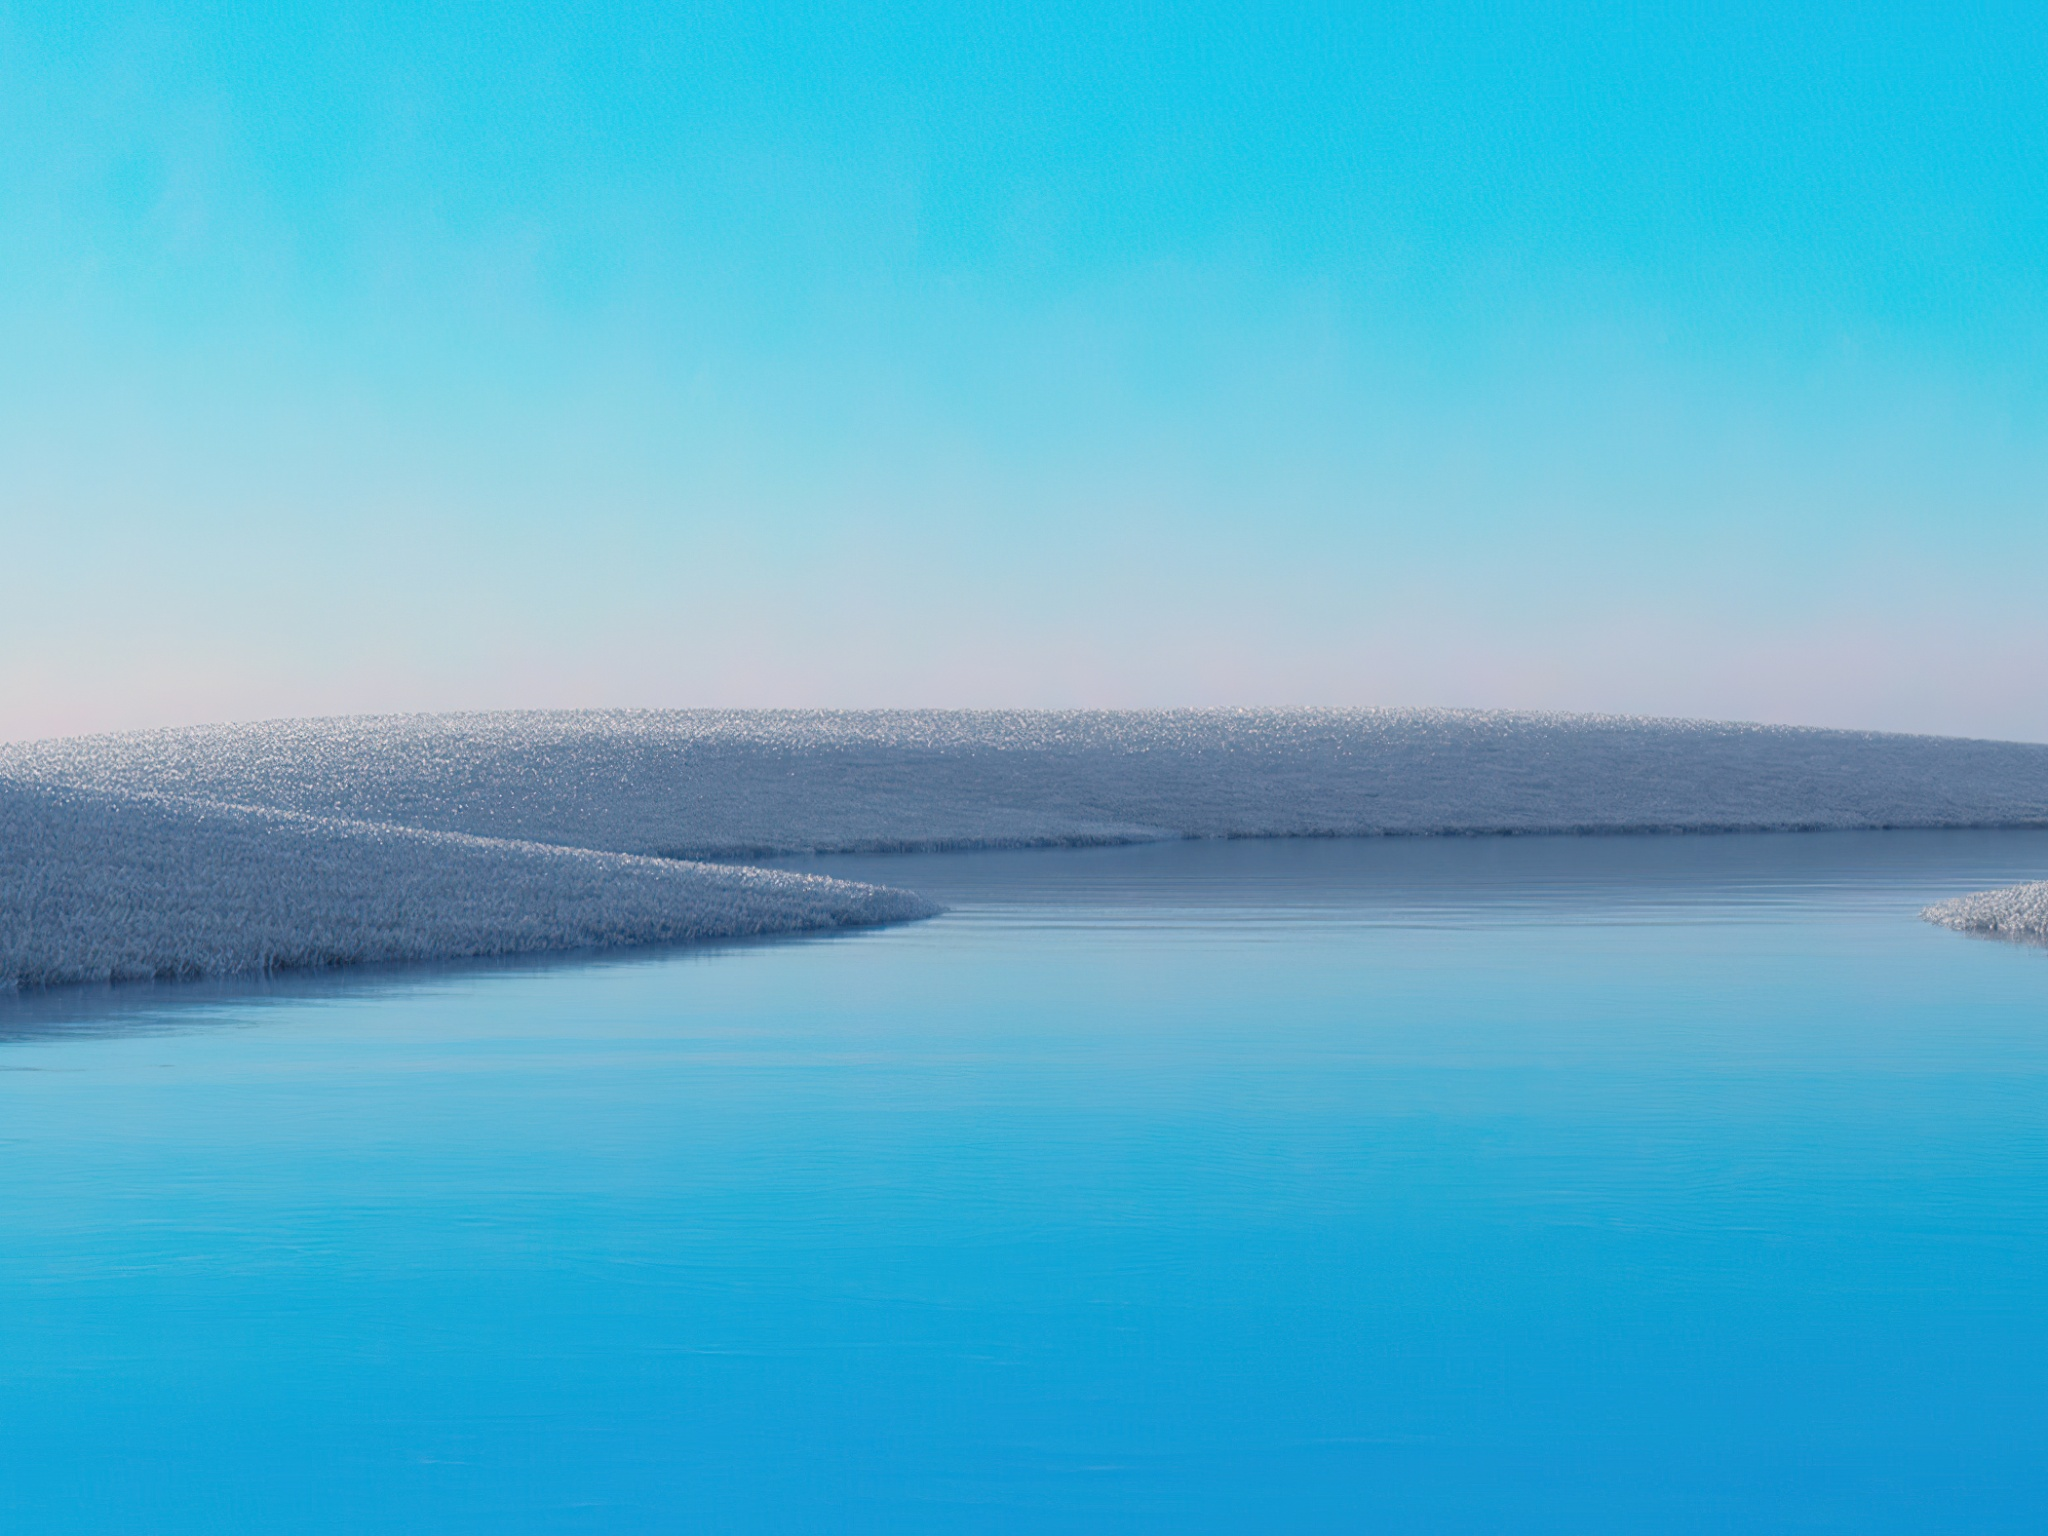 They are offered for download solely for. Lake 4K Wallpaper, Clear sky, Blue sky, Windows 10X